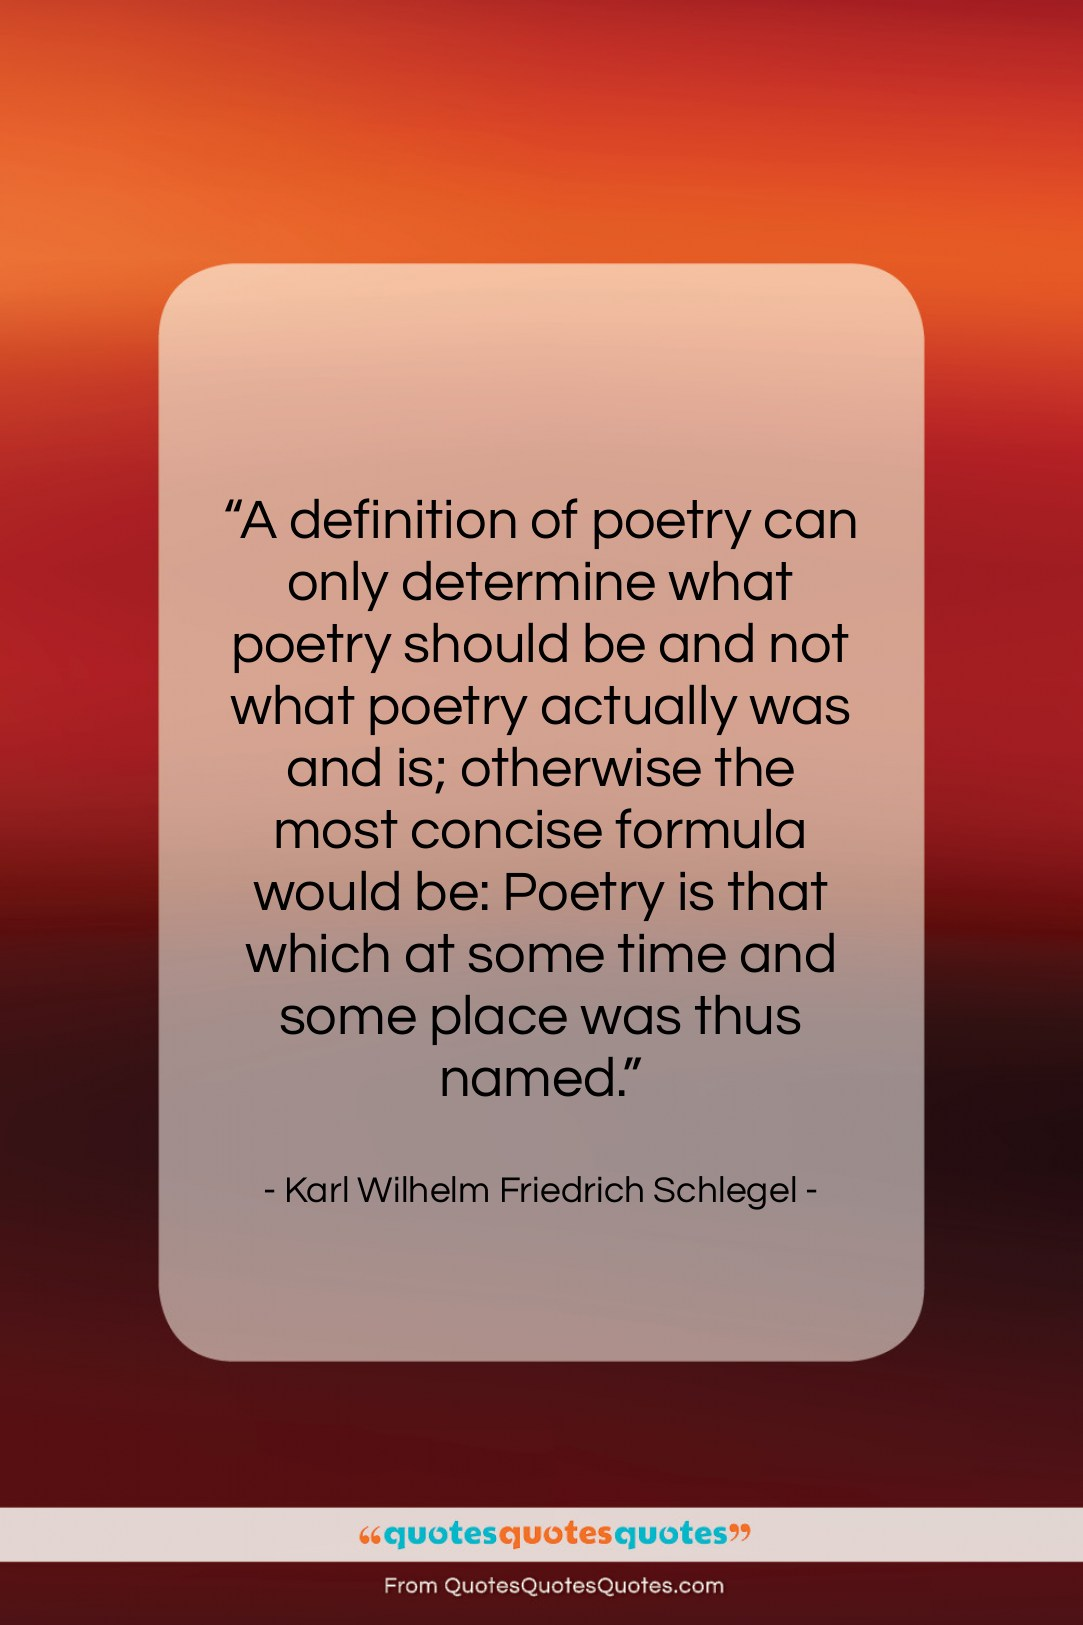 """Karl Wilhelm Friedrich Schlegel quote: """"A definition of poetry can only determine…""""- at QuotesQuotesQuotes.com"""